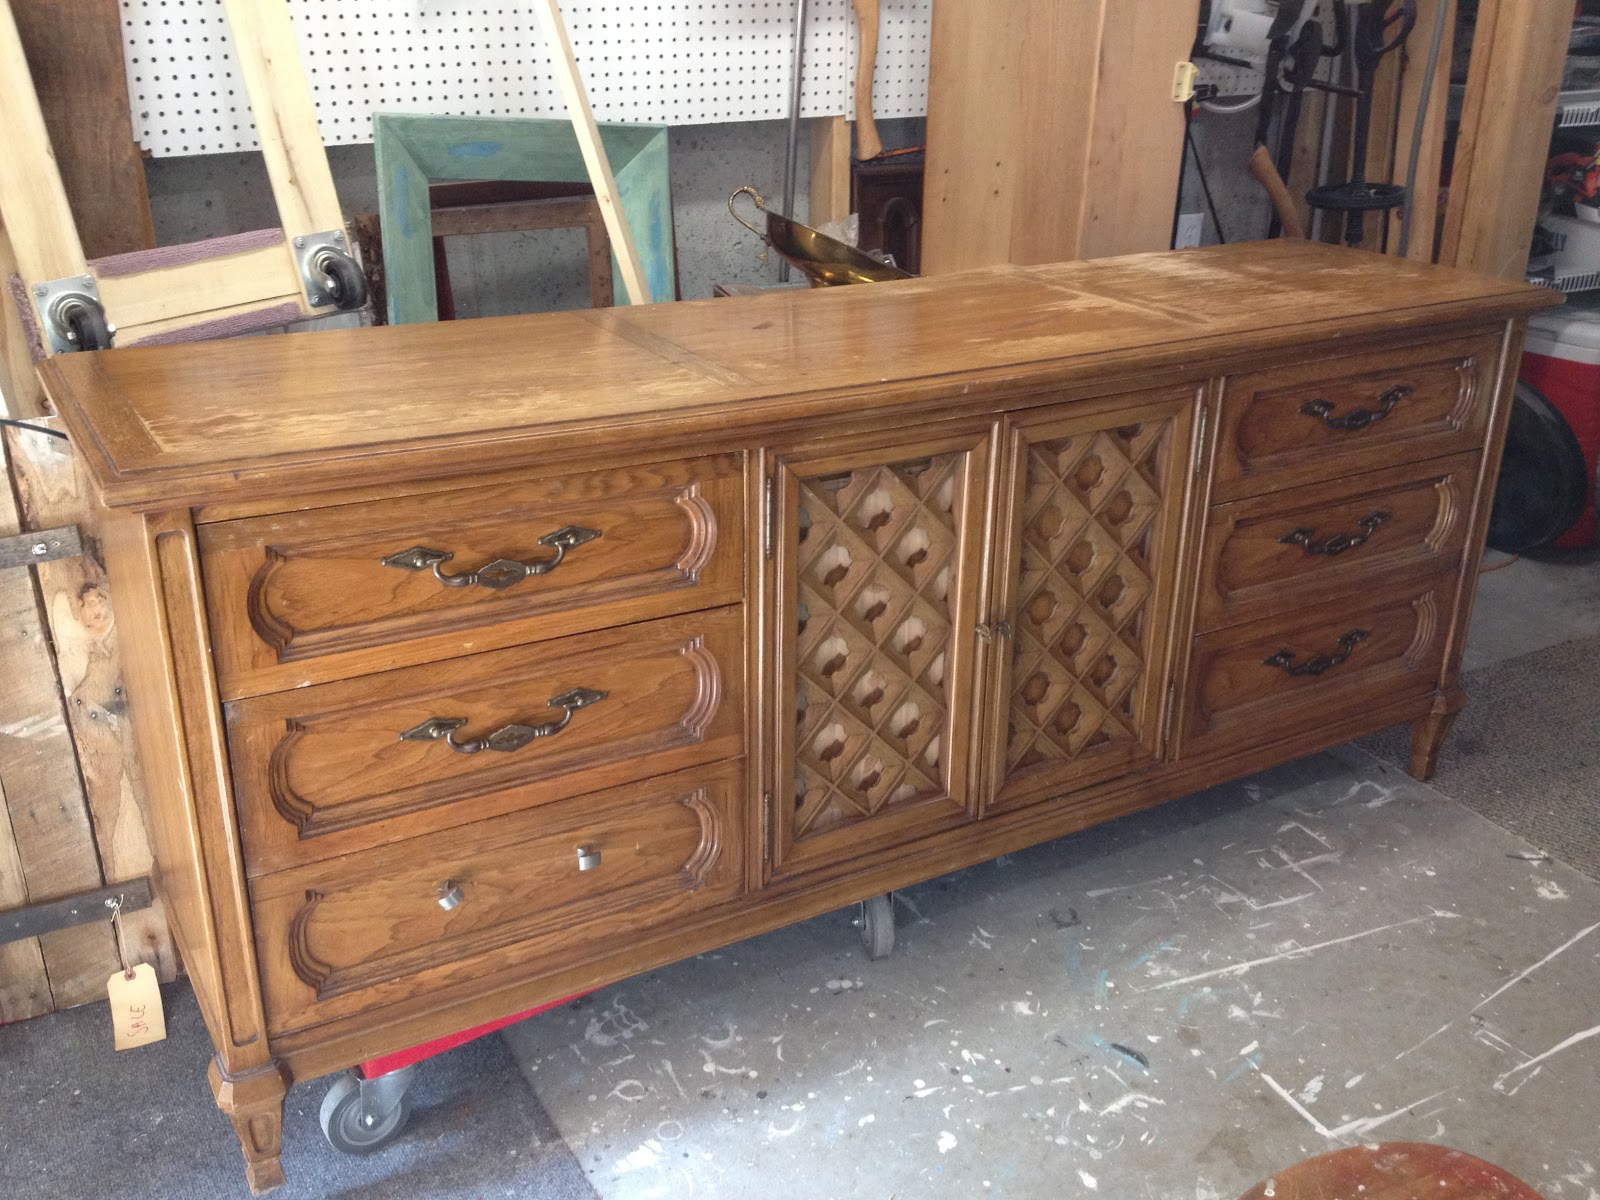 Piece It Is Thomasville Really Was In Good Shape Drawers Worked Well No Major Scratches Or Chips Legs Were Perfect Just Need Some Updating